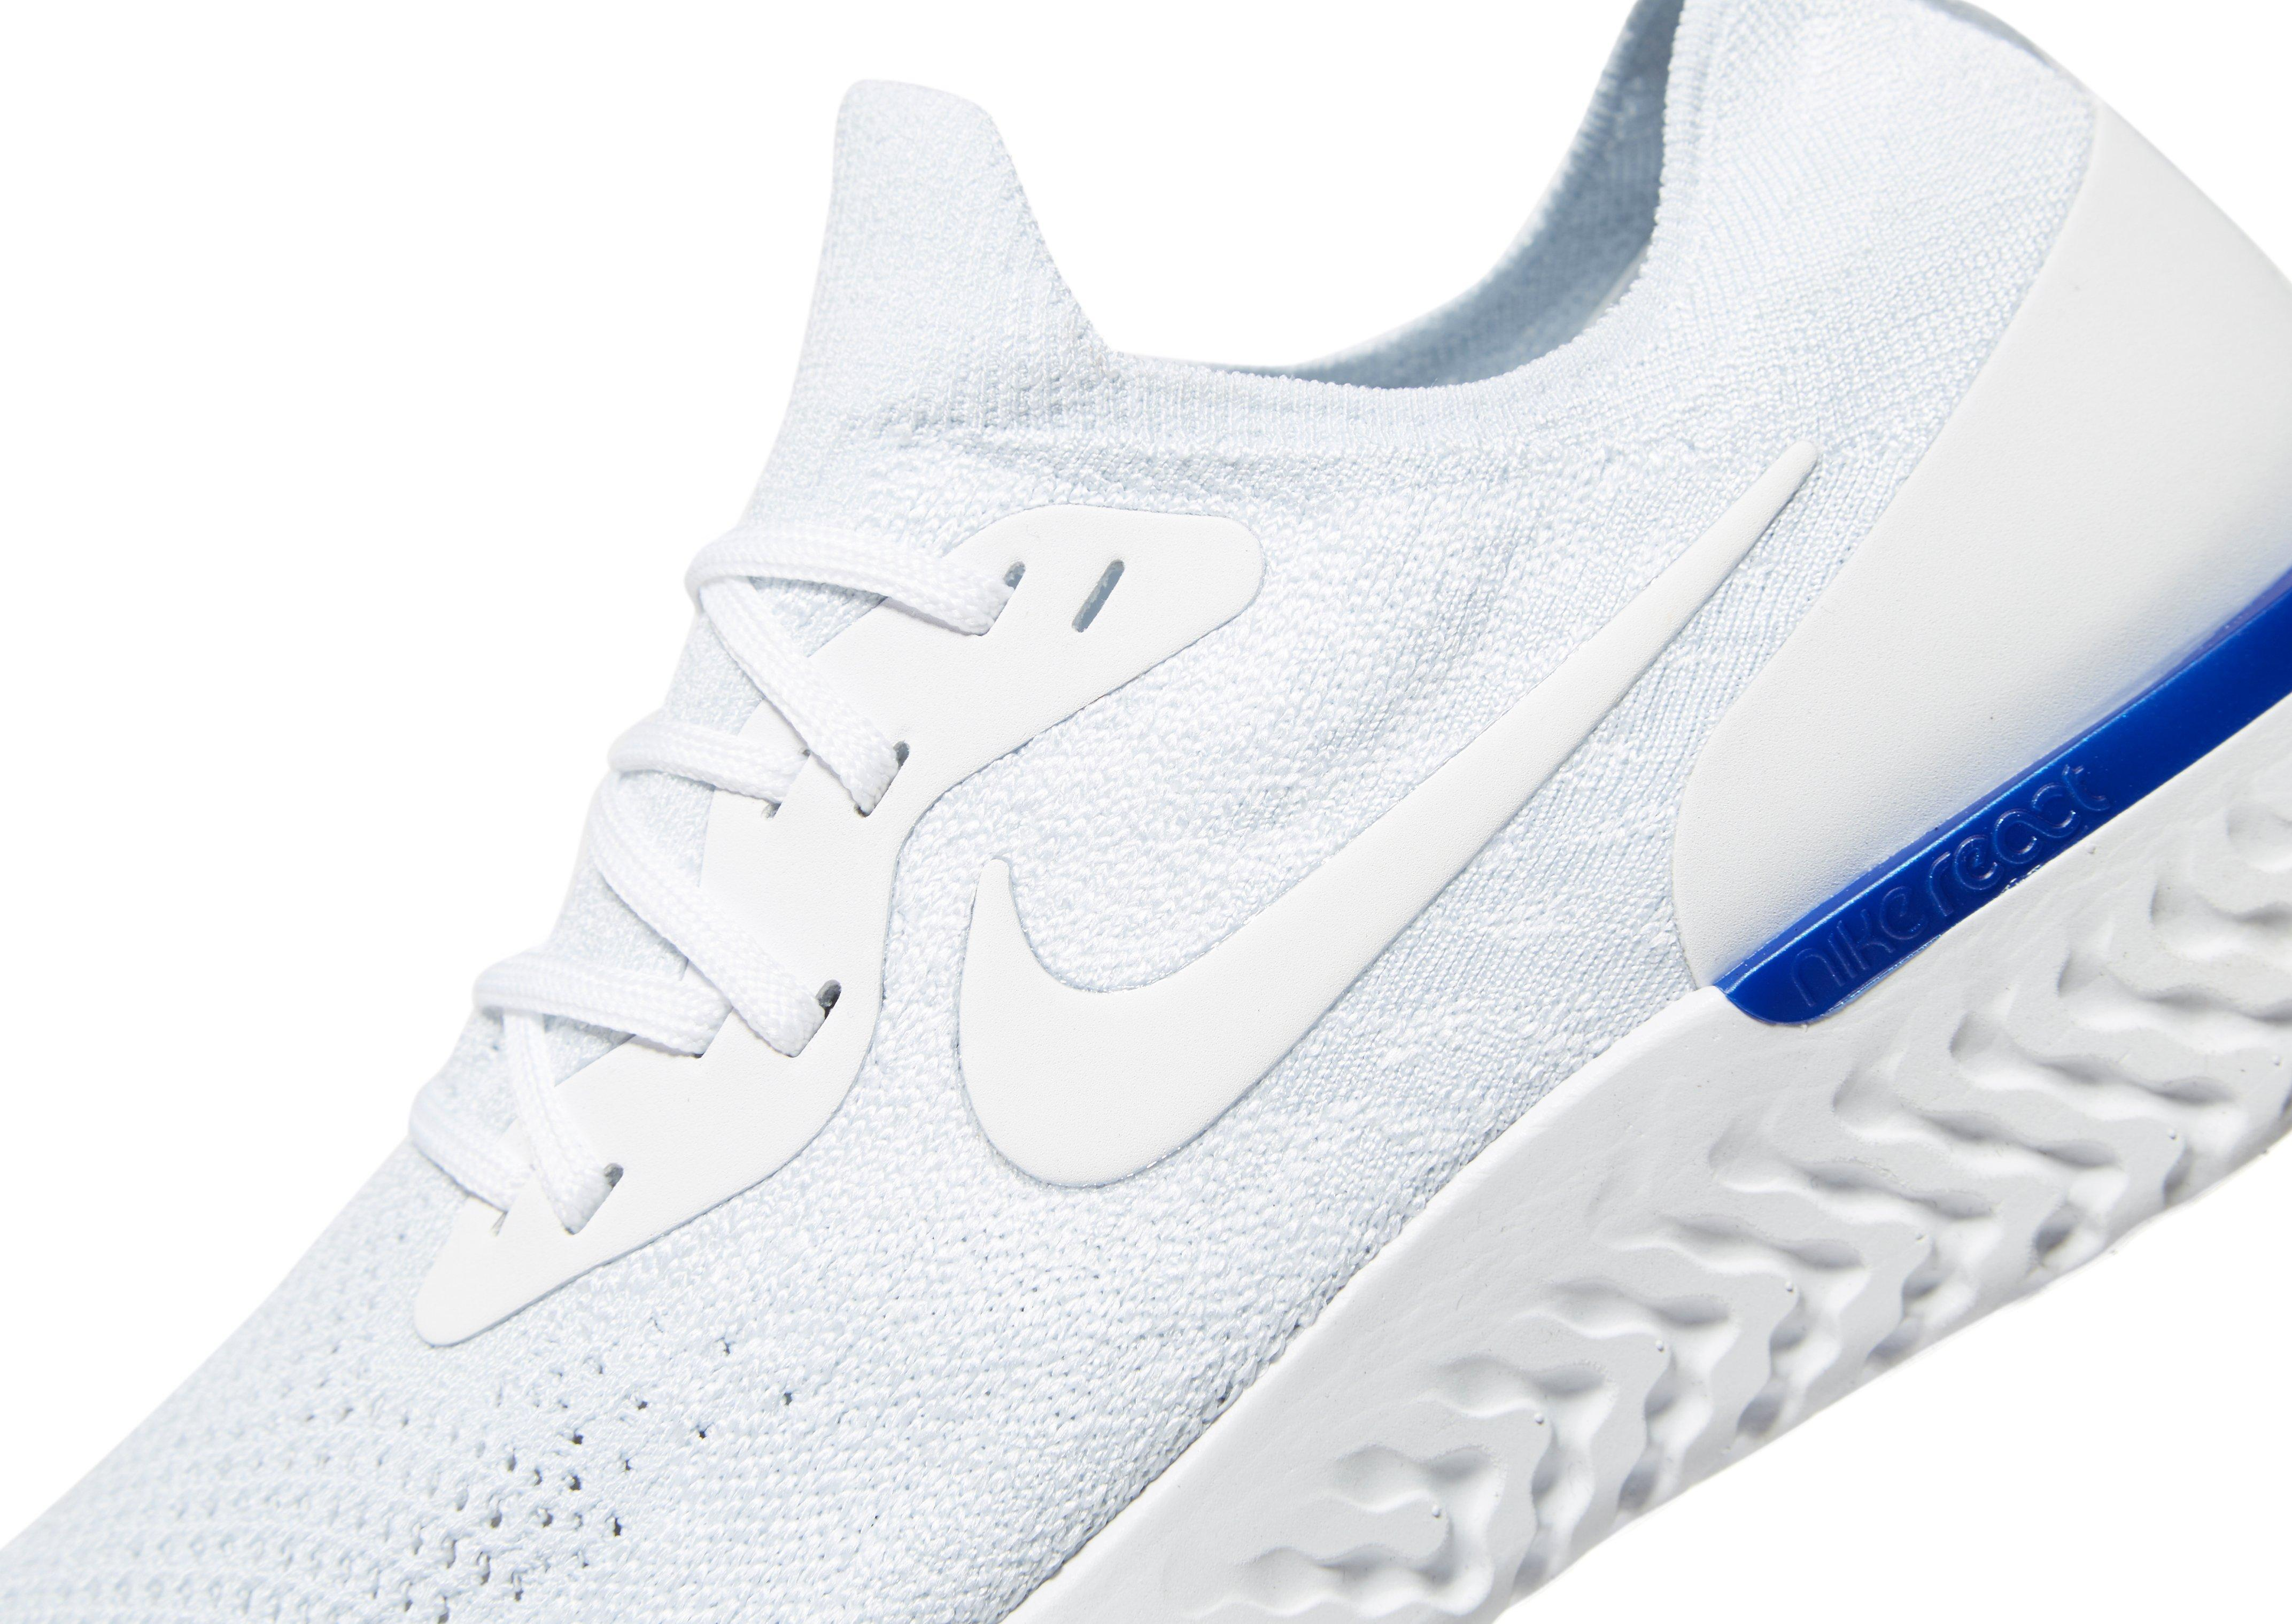 Nike Synthetic Epic React Flyknit Fitness Shoes in White/Blue (White) for Men